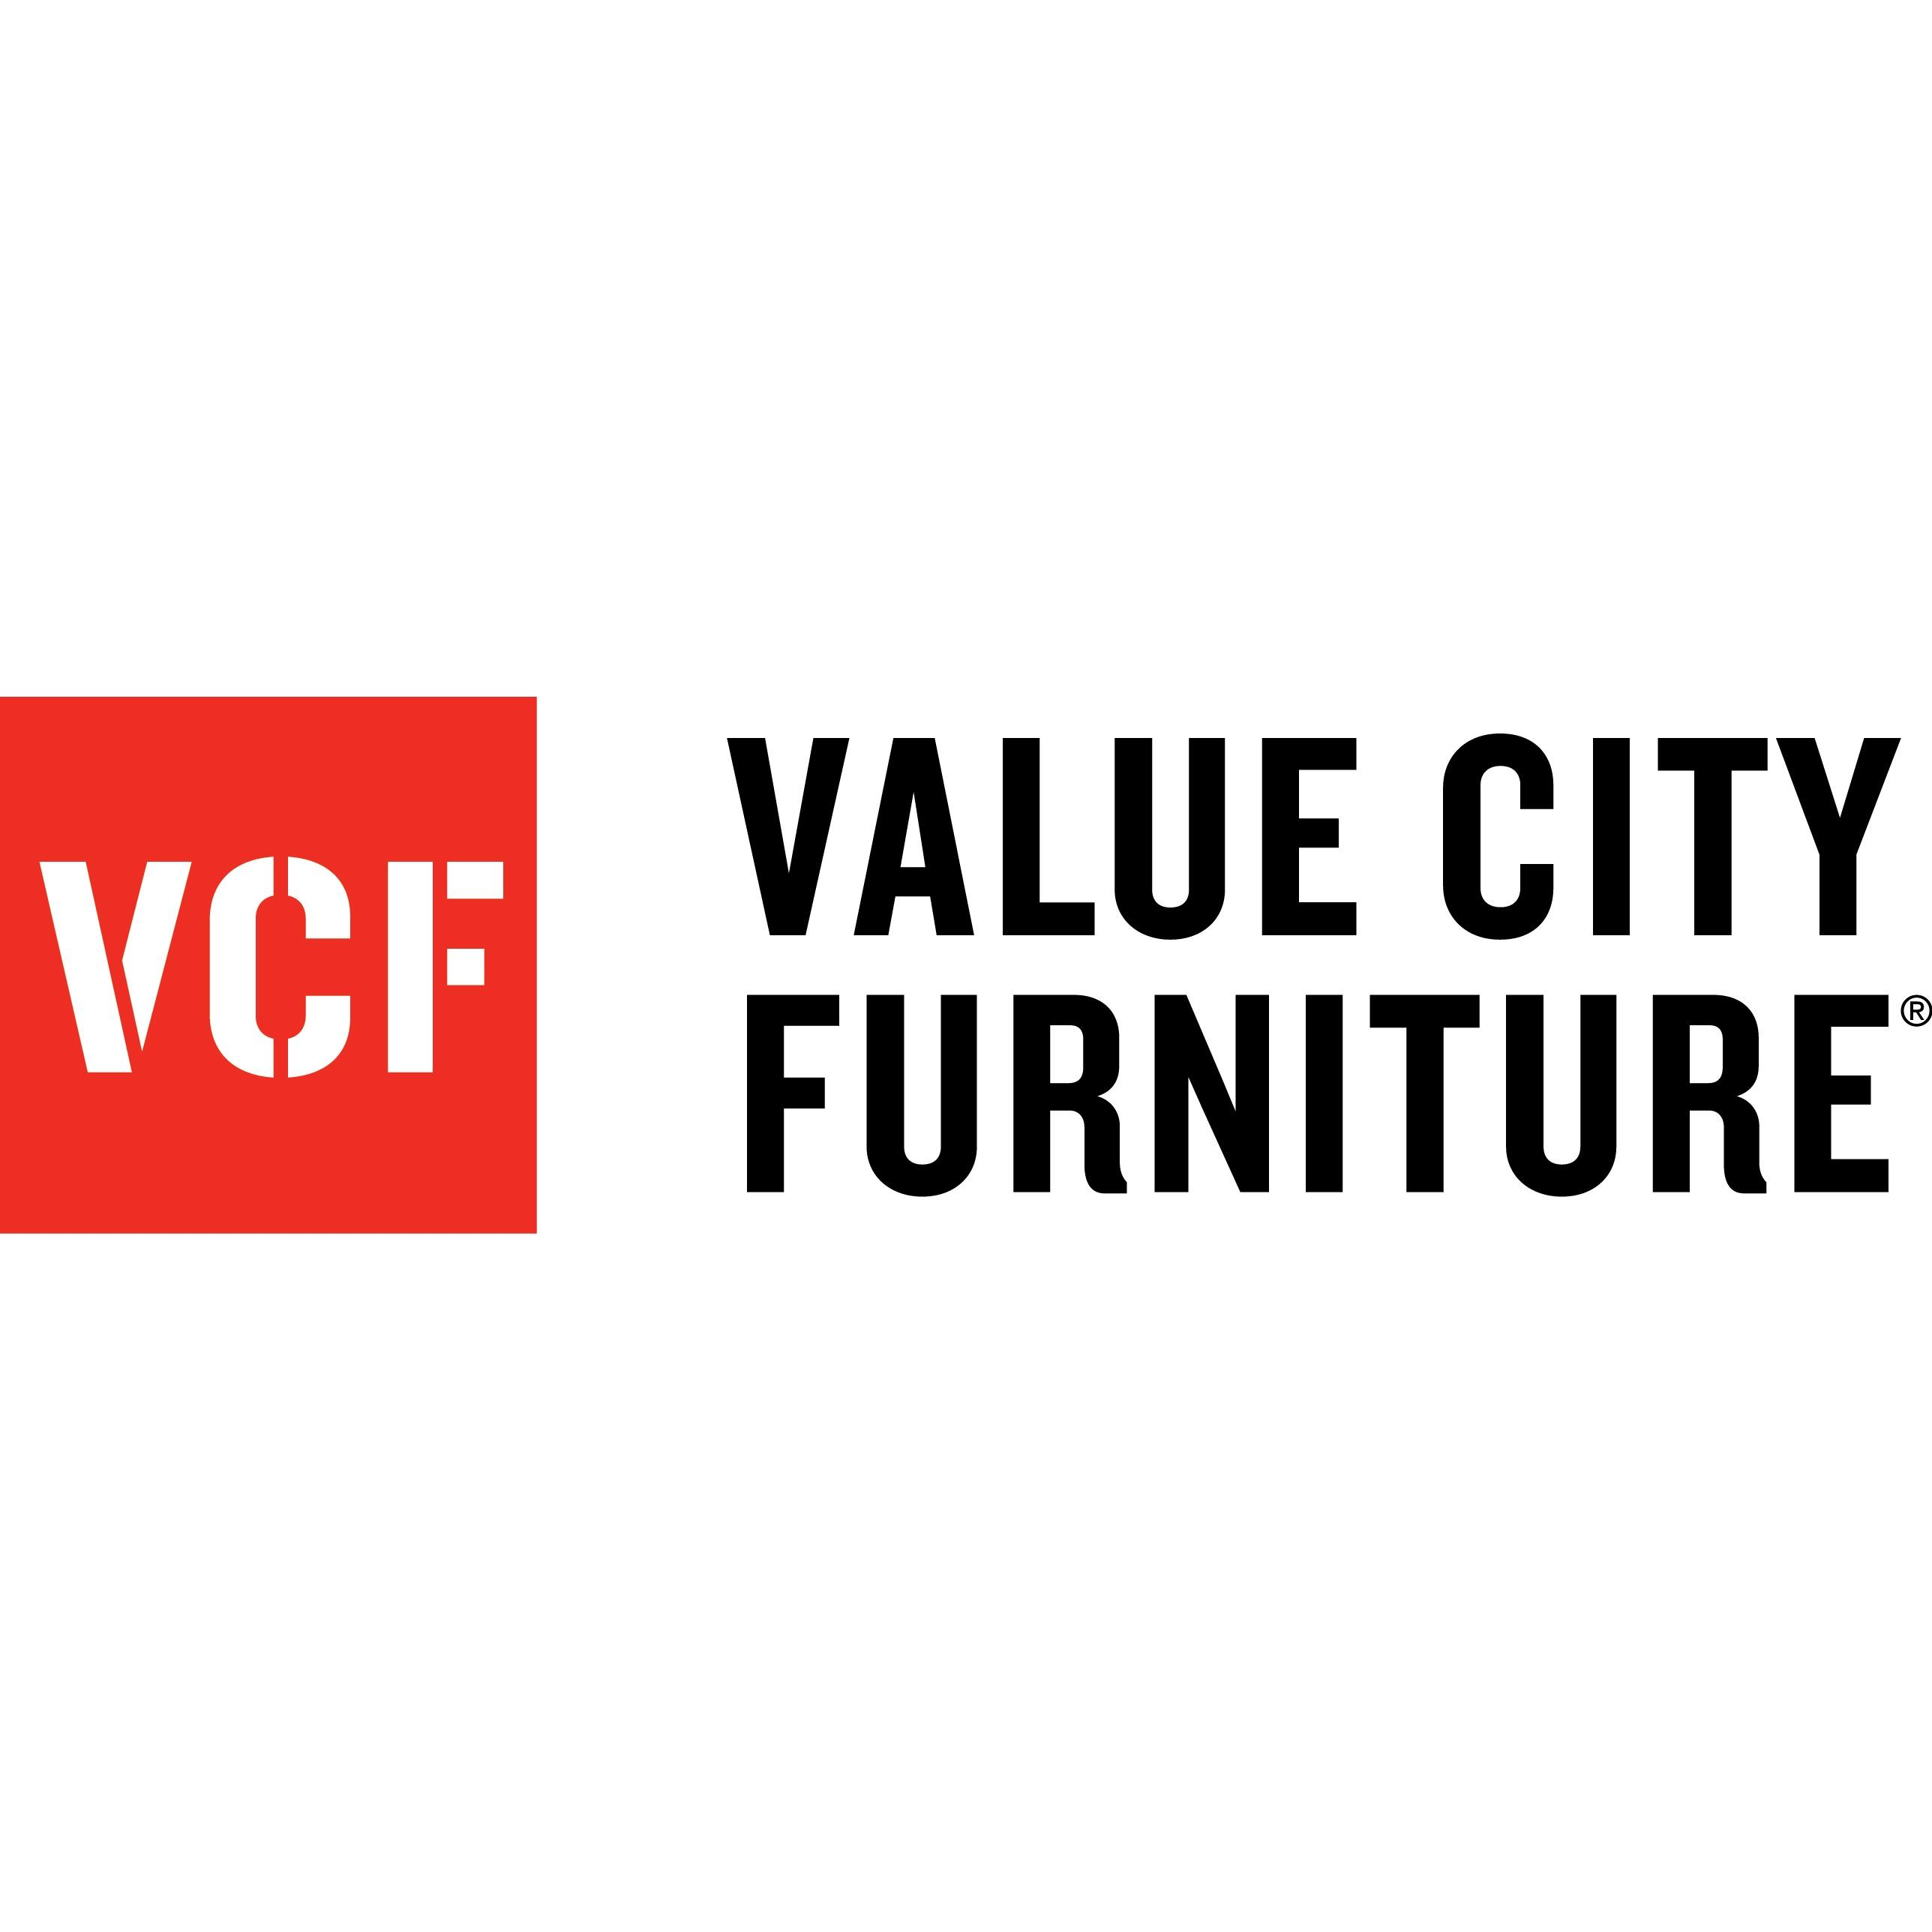 Value City Furniture image 9